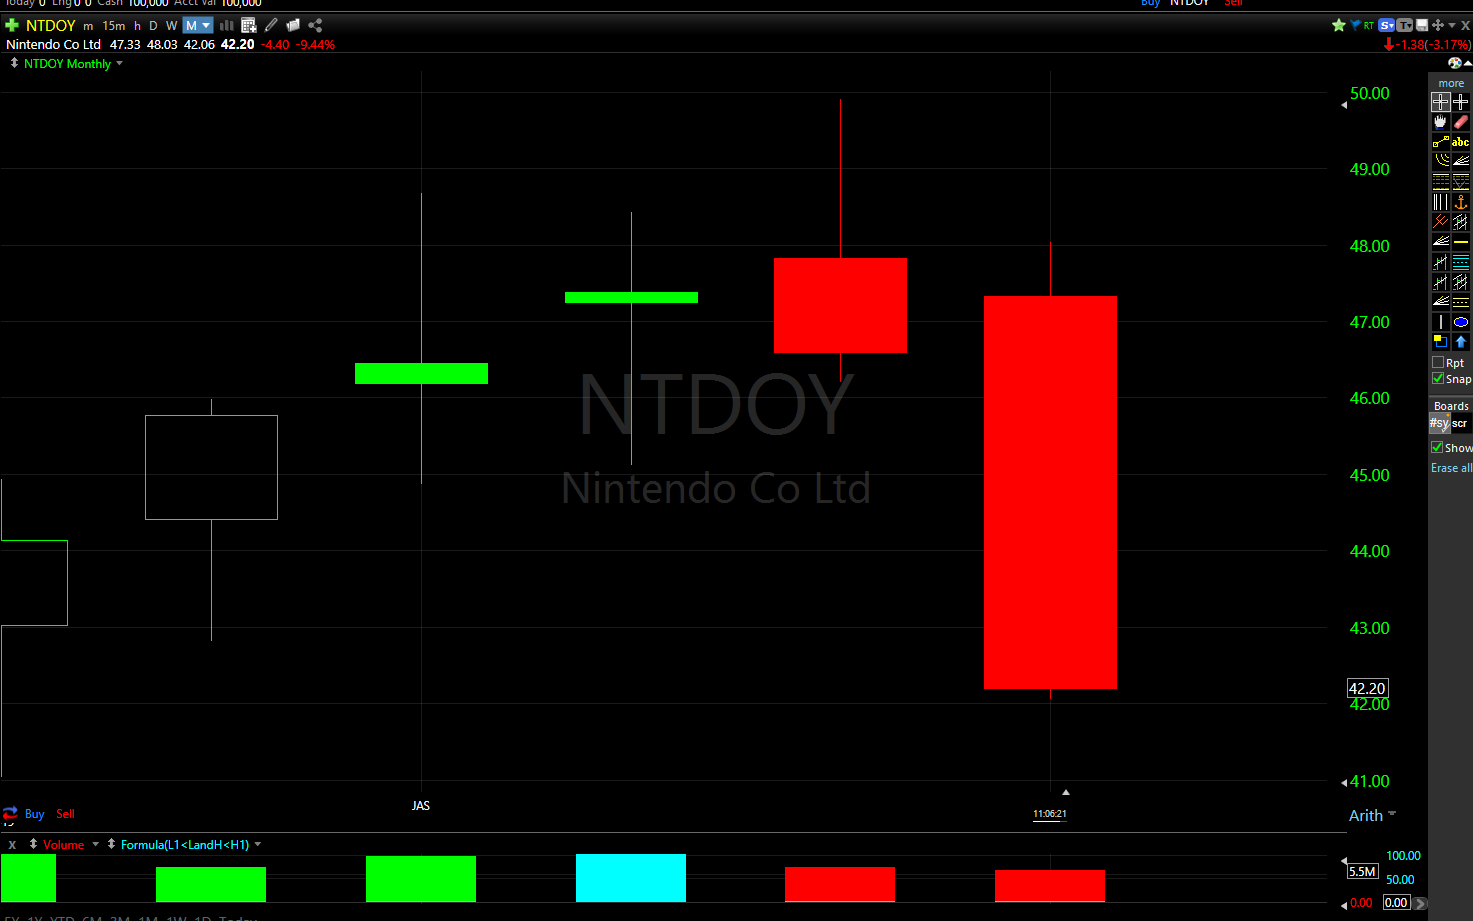 July-October 2019 NTDOY stock chart illustrating a reversal strategy break to the downside.